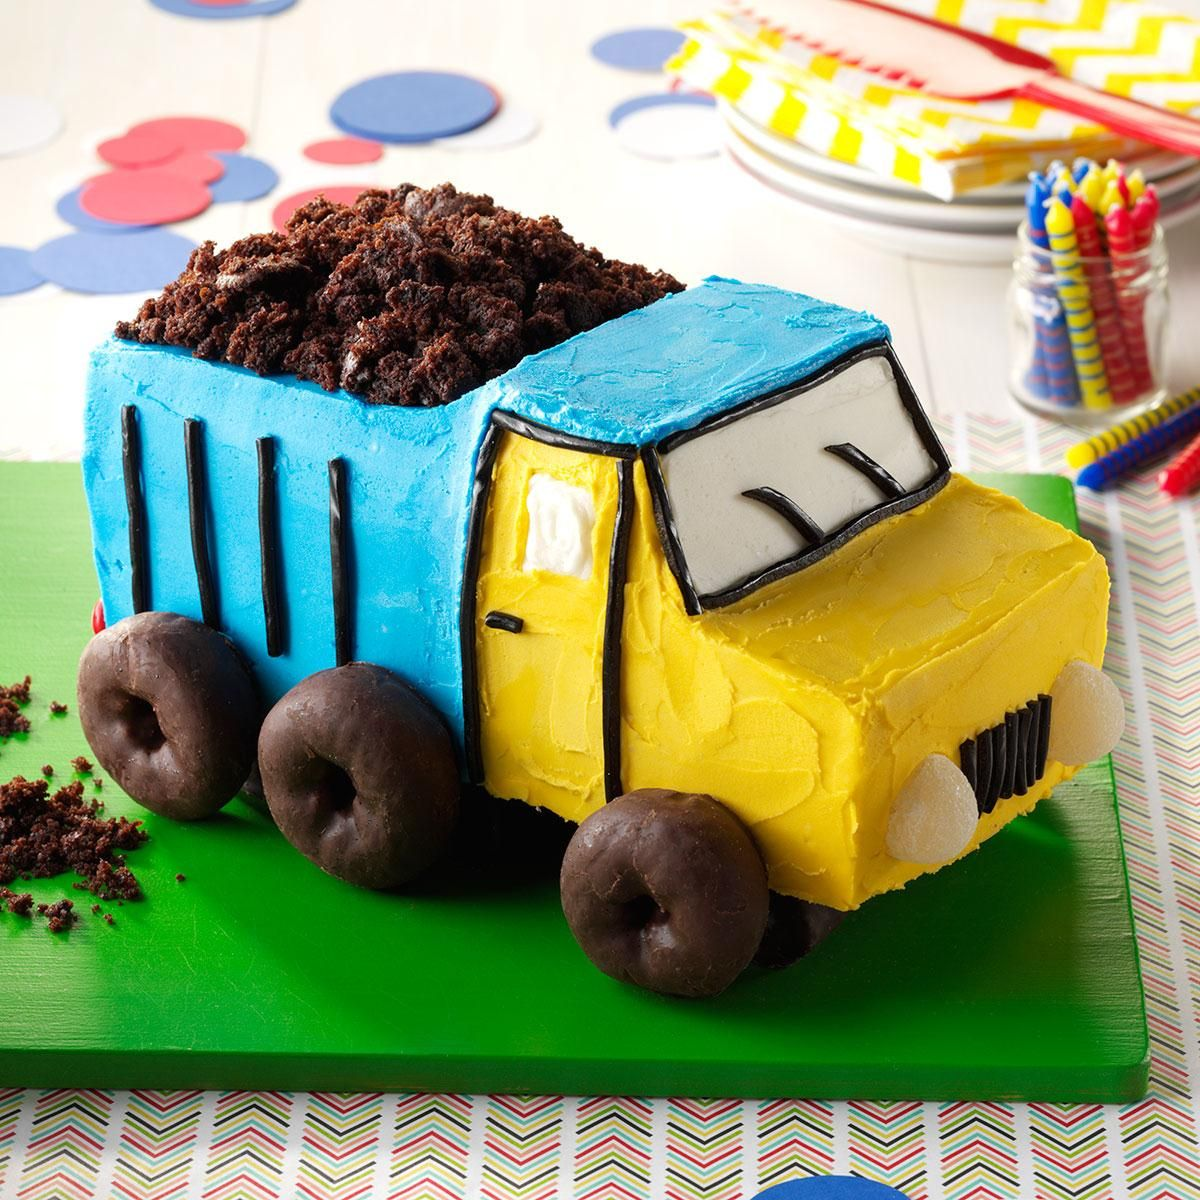 Stupendous Dump Truck Cake Recipe With Images Dump Truck Cakes Truck Funny Birthday Cards Online Fluifree Goldxyz